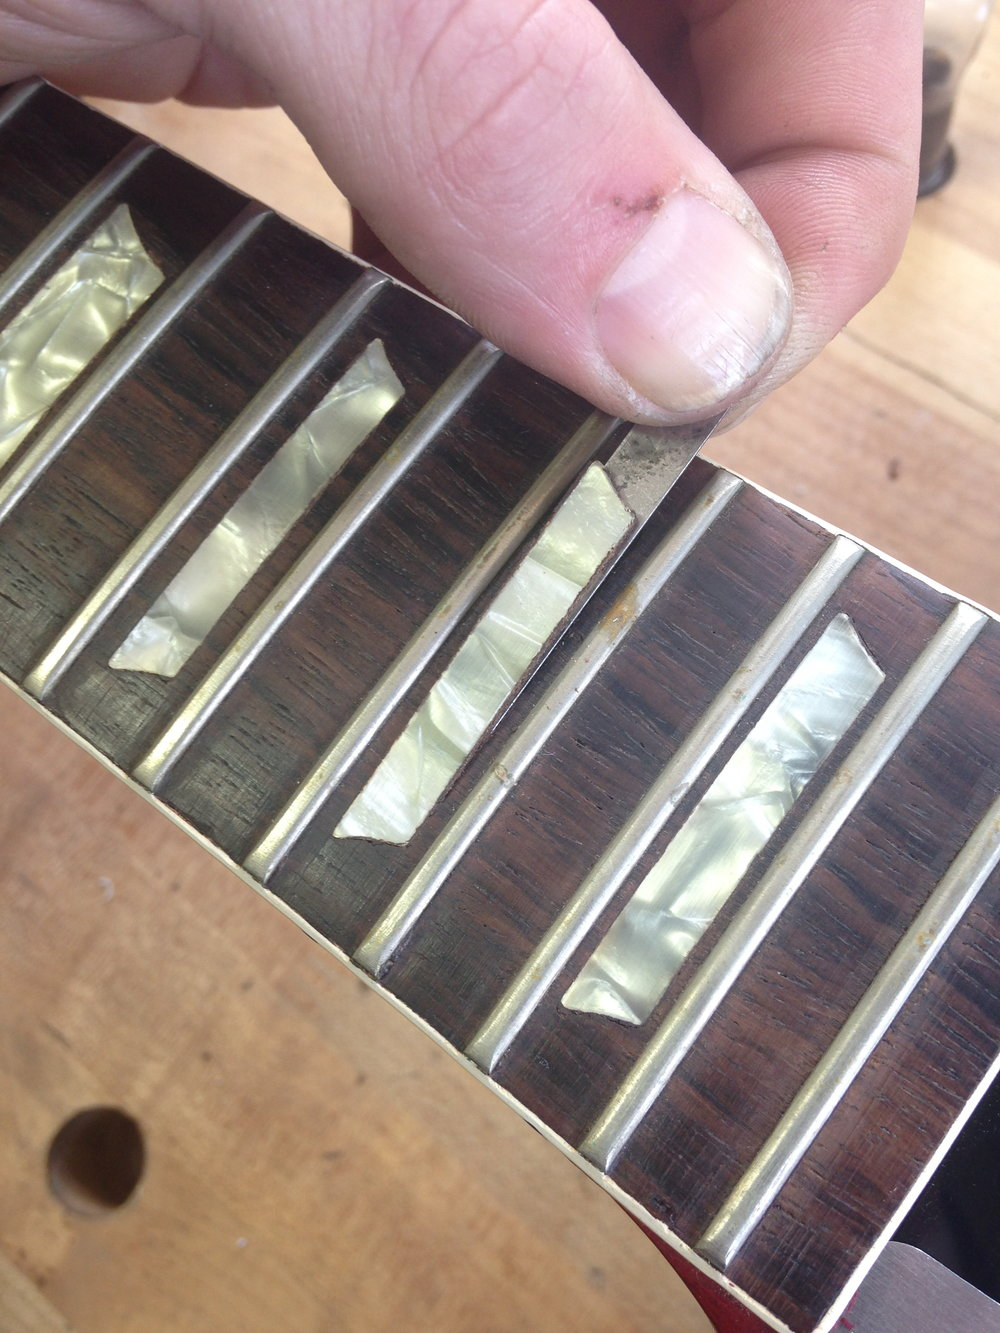 - I chose to remove the inlays. This guitar was made in the 60s and the inlays are made of celluloid instead of pearl. The heat that I am about to apply would damage them.